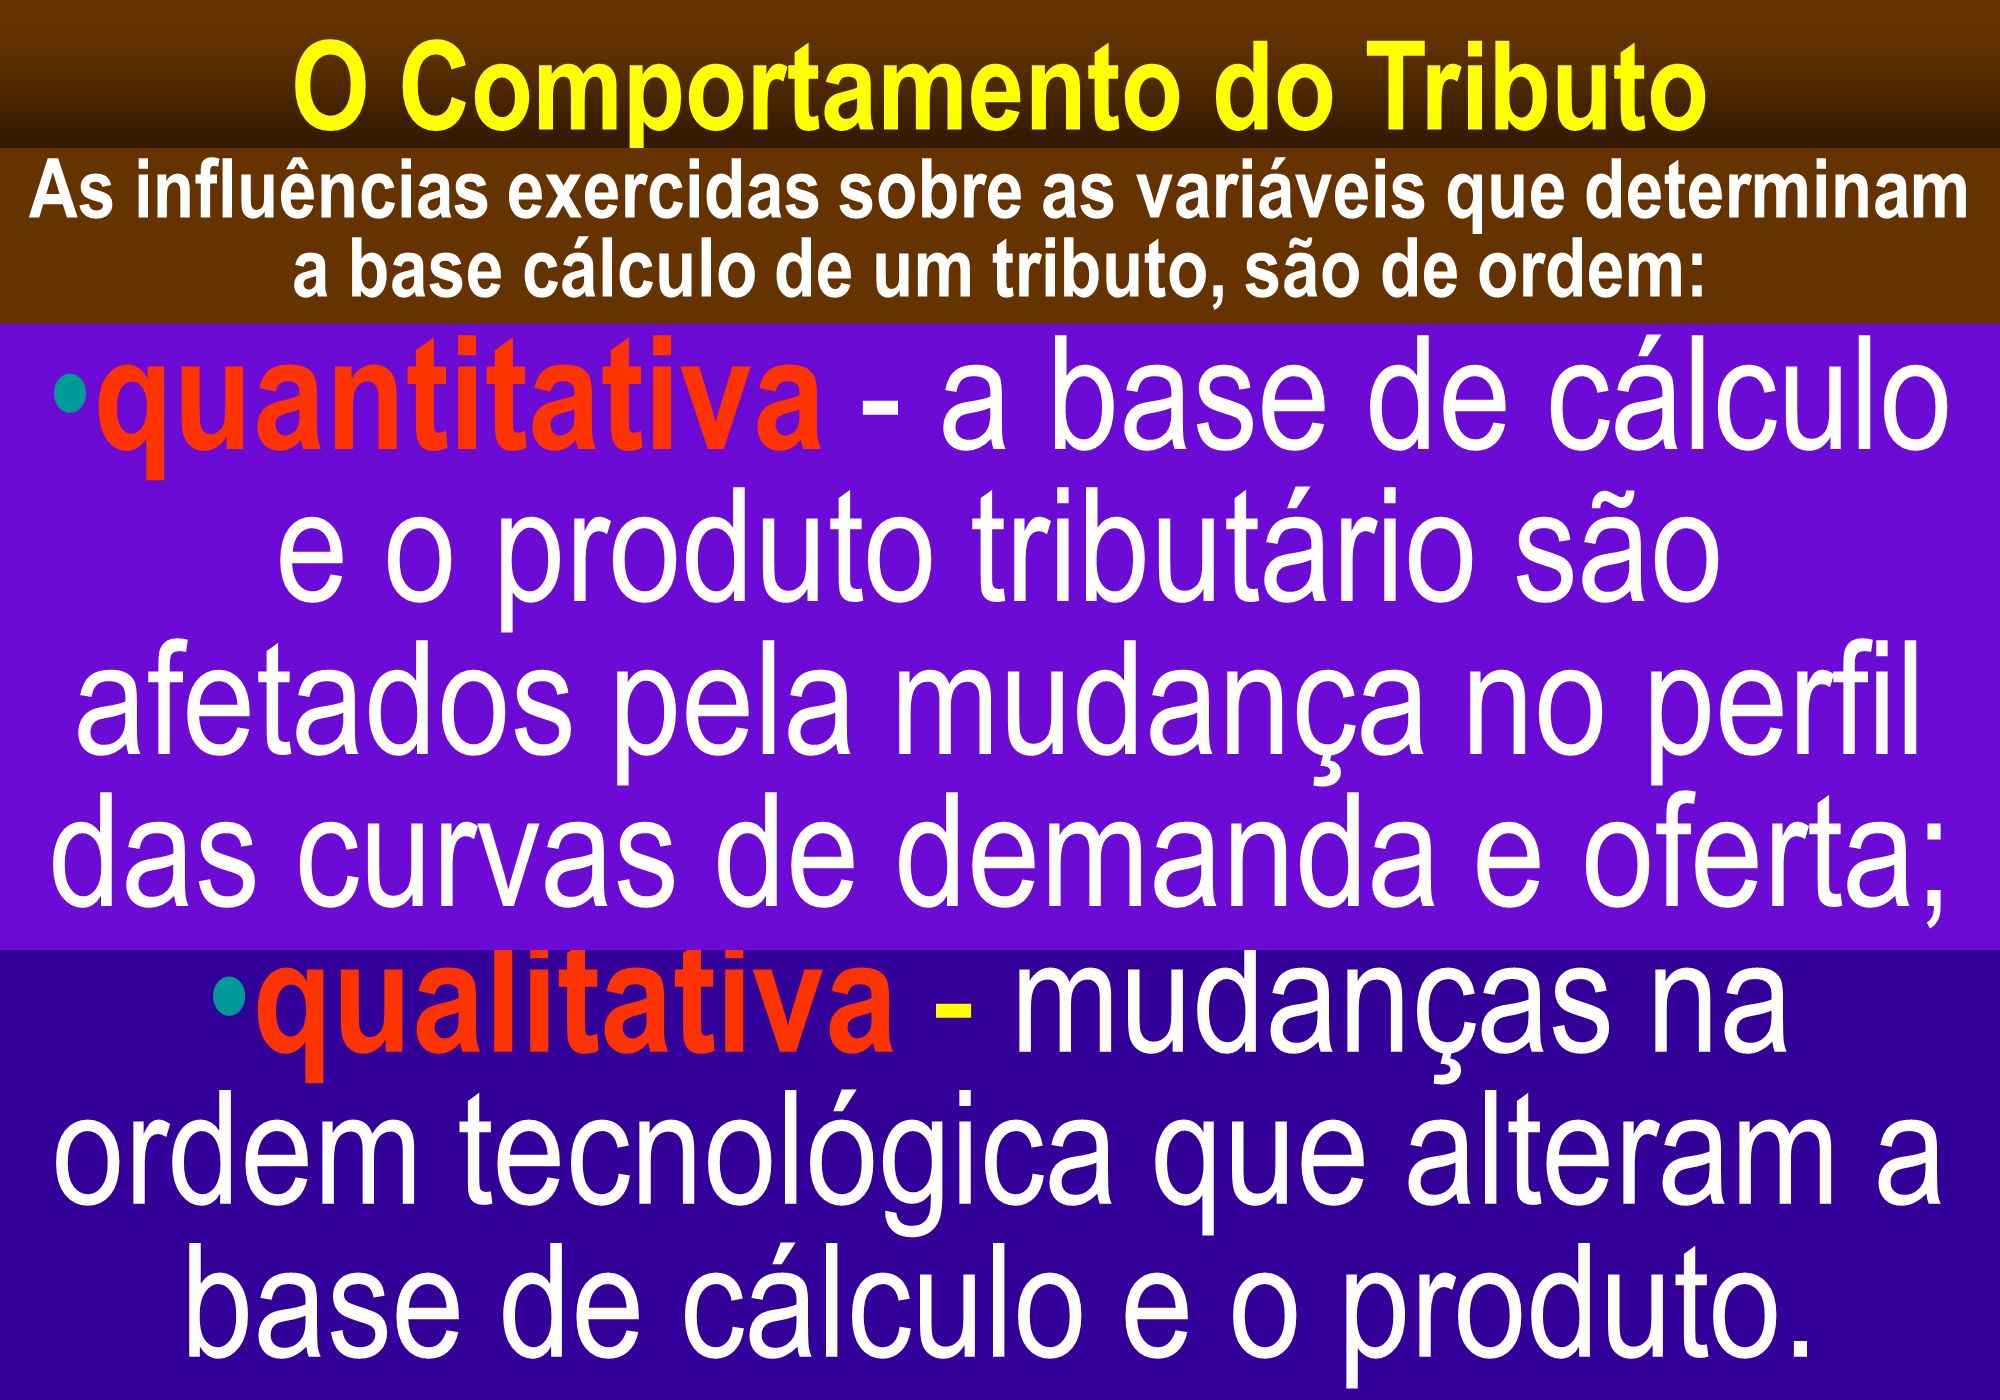 O Comportamento do Tributo